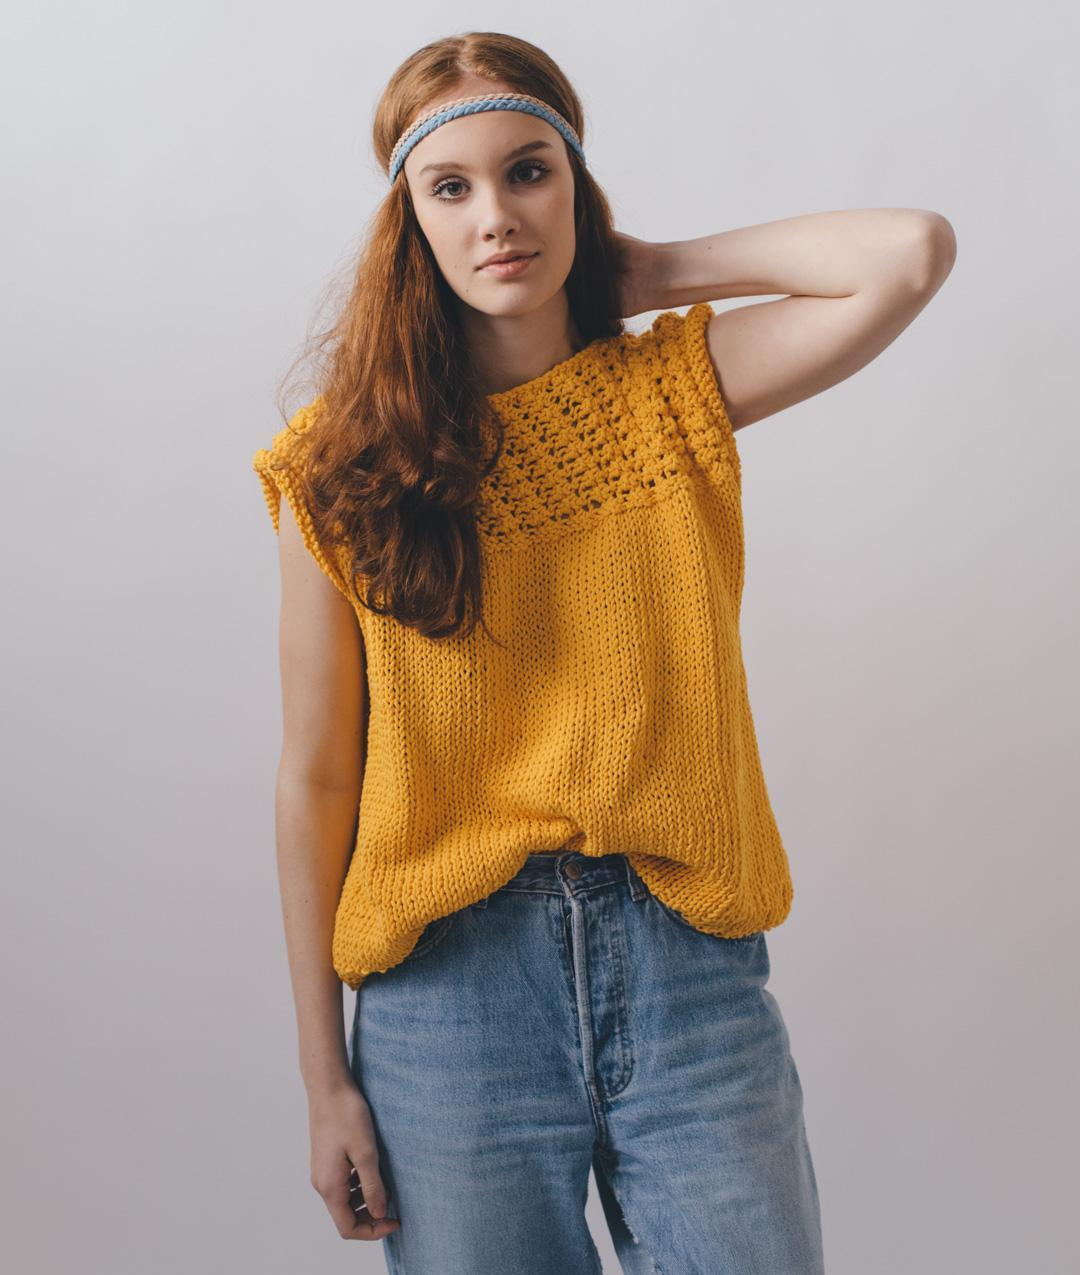 Jenny Tee: Cotton Knit Kit for Sweaters and Tops online + Pattern |  Bettaknit